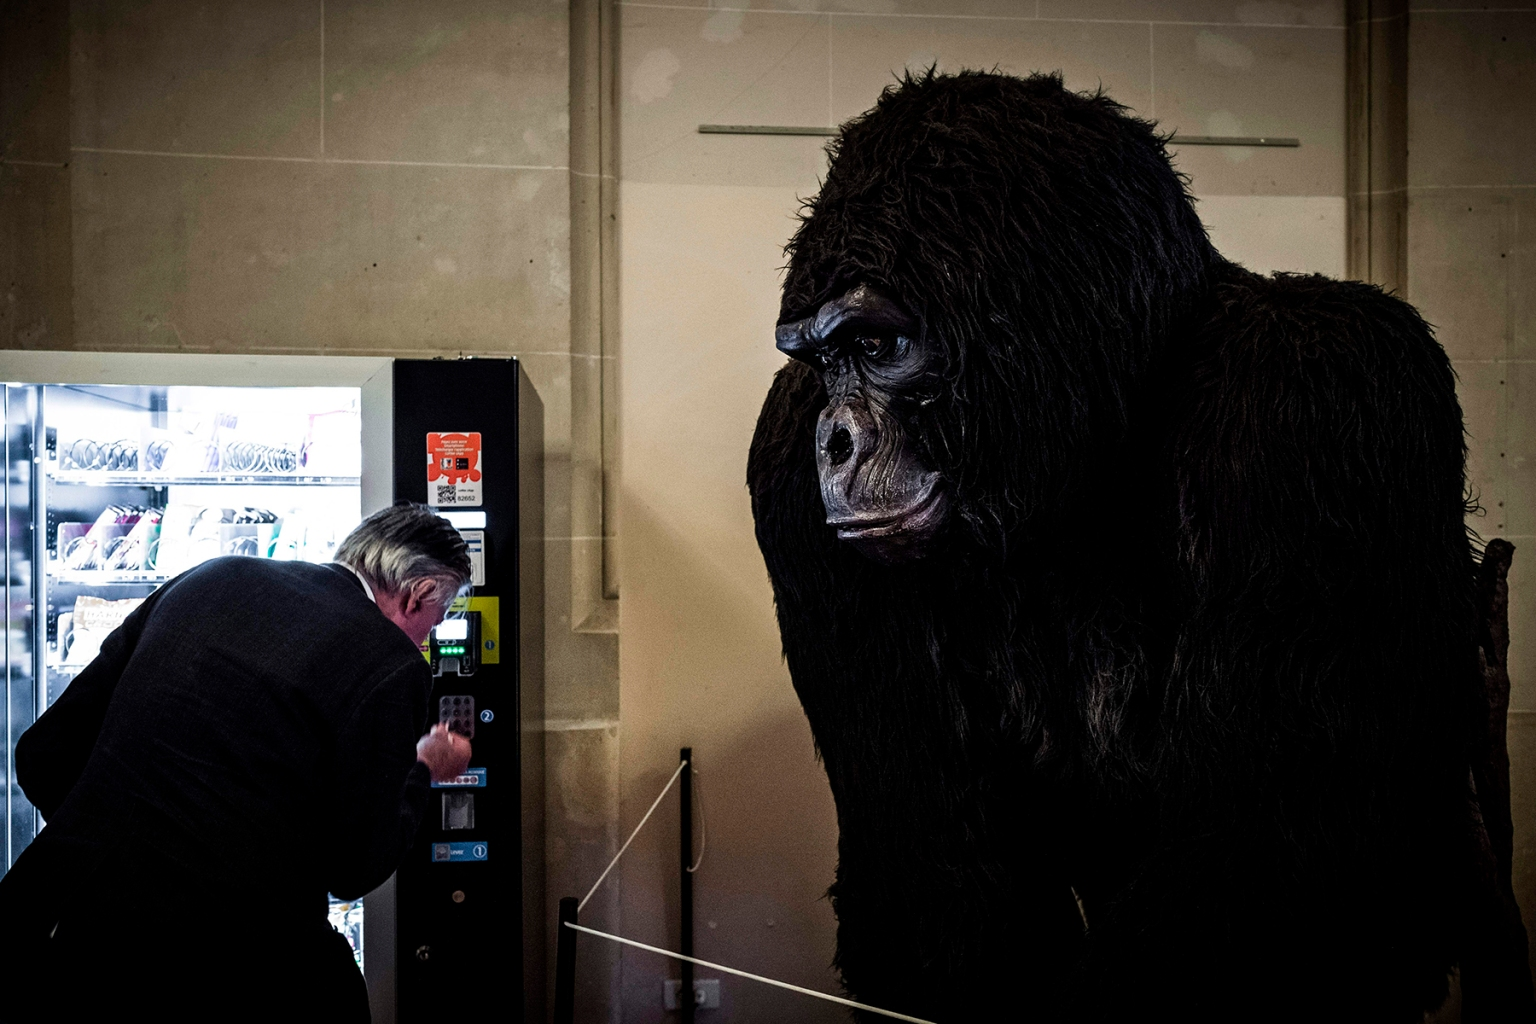 A man buys a snack from a vending machine next to a gorilla effigy in a corridor of the Palais de la Decouverte in Paris on Nov. 6. The science museum contains permanent exhibits for astronomy, physics, mathematics, geology, chemistry, and biology. PHILIPPE LOPEZ/AFP/Getty Images